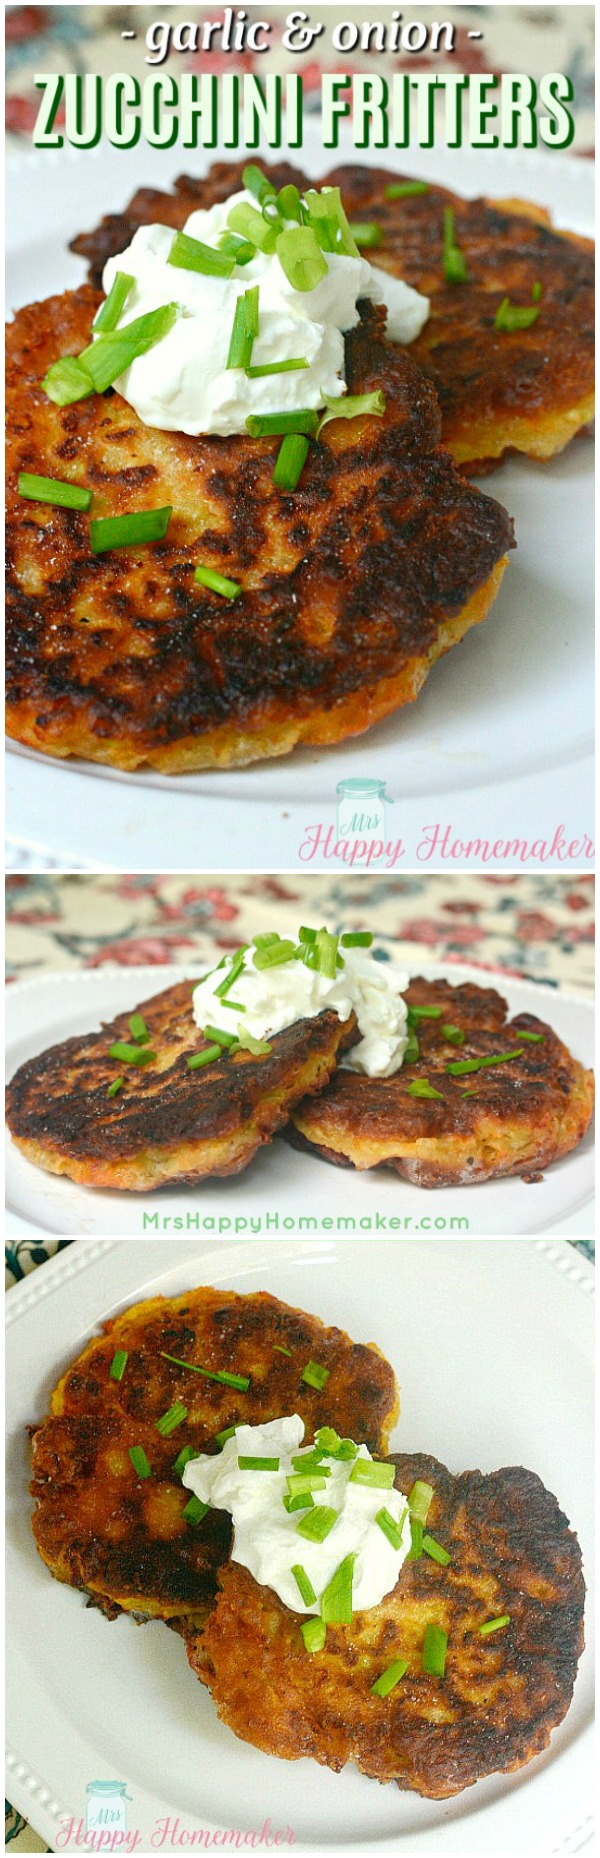 Easy Homemade Zucchini Fritters - they freeze great too! Love these!!!! Great way to use up all that zucchini from the garden